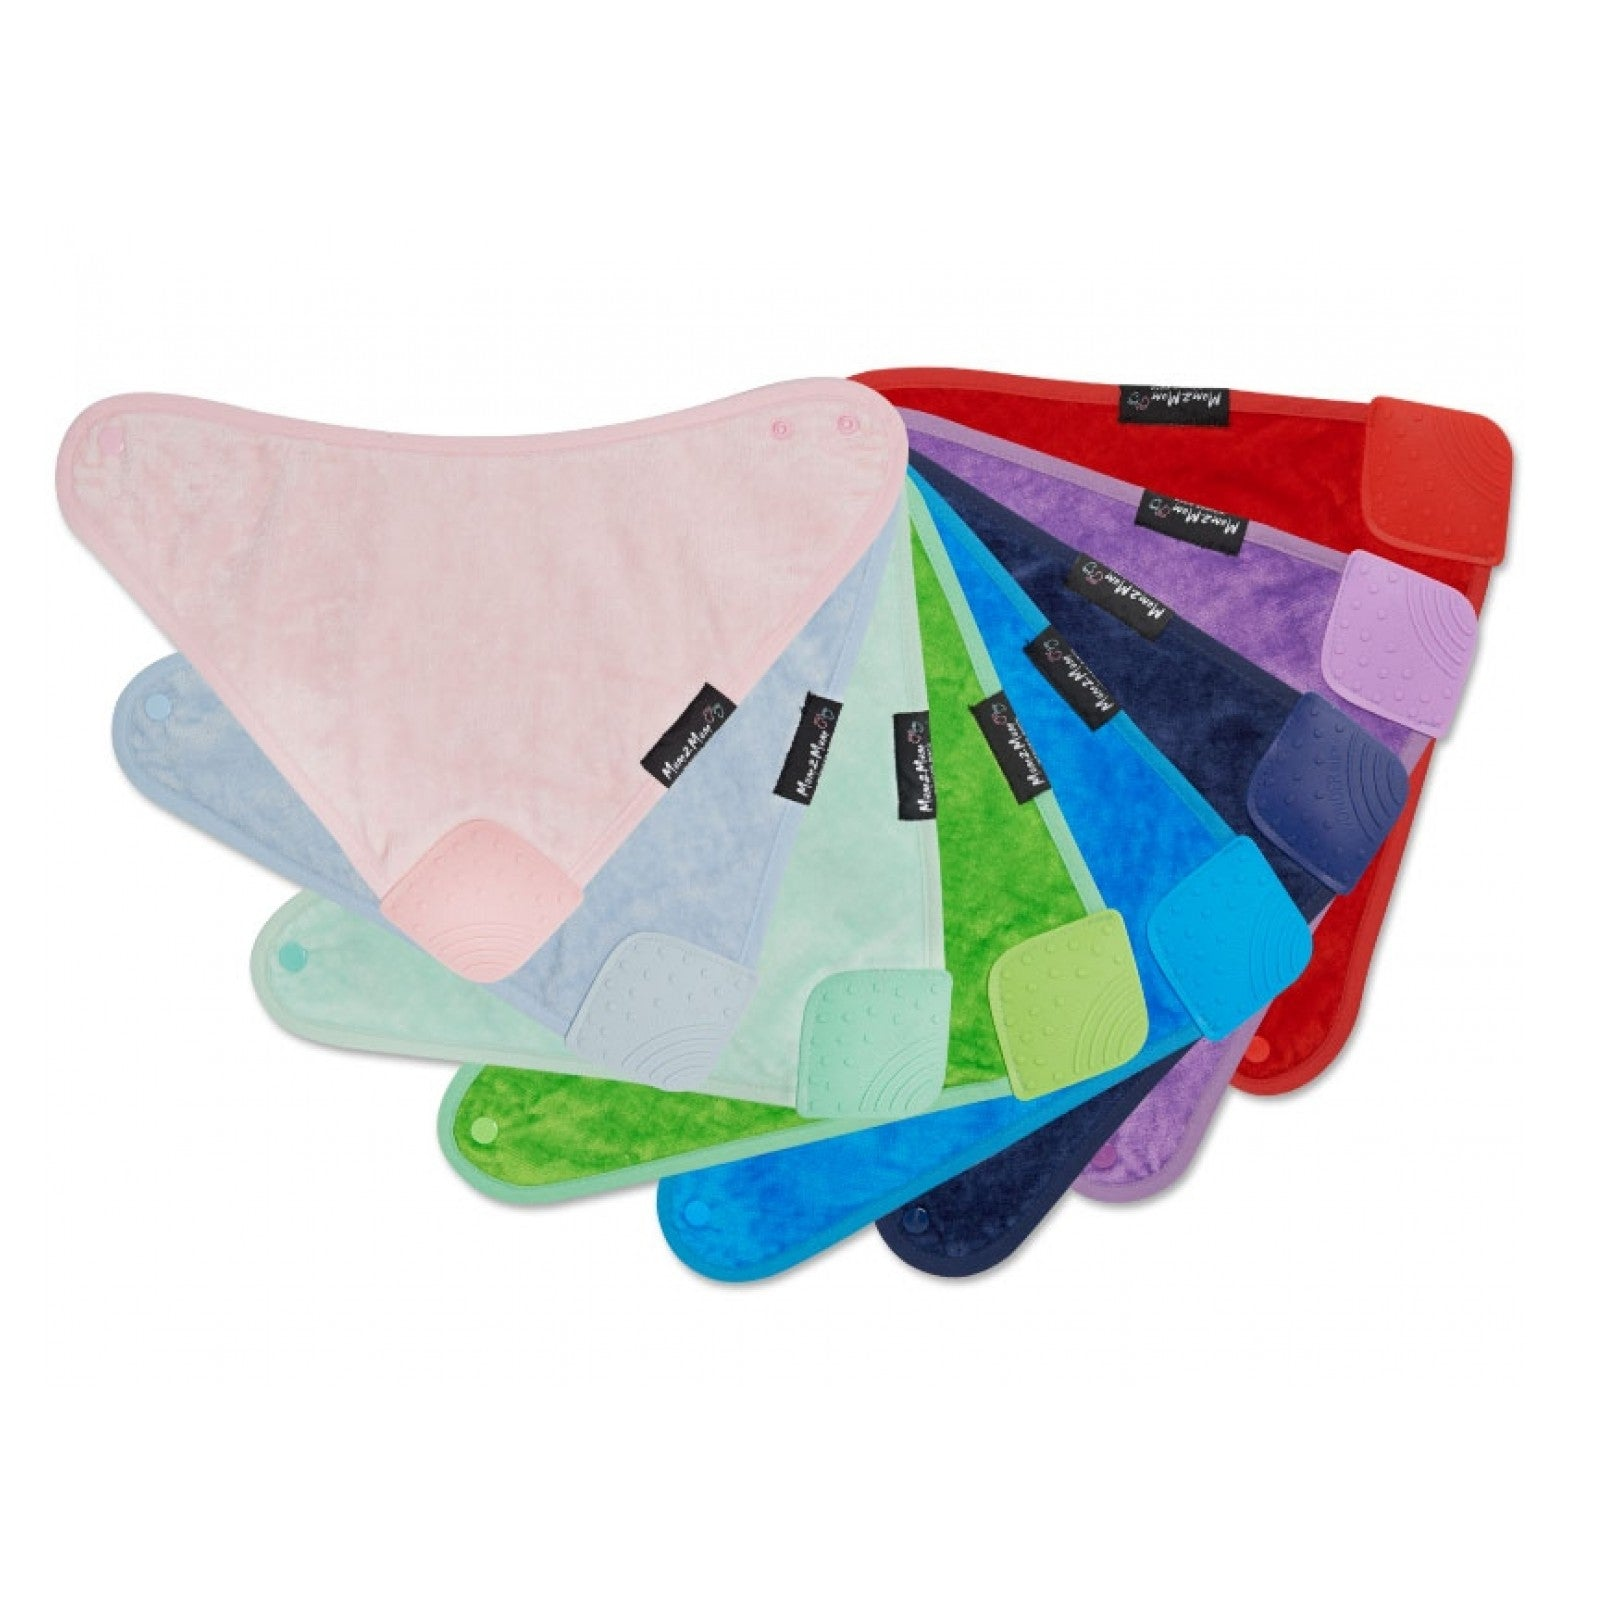 Teething Wonderbib Silicone All colours